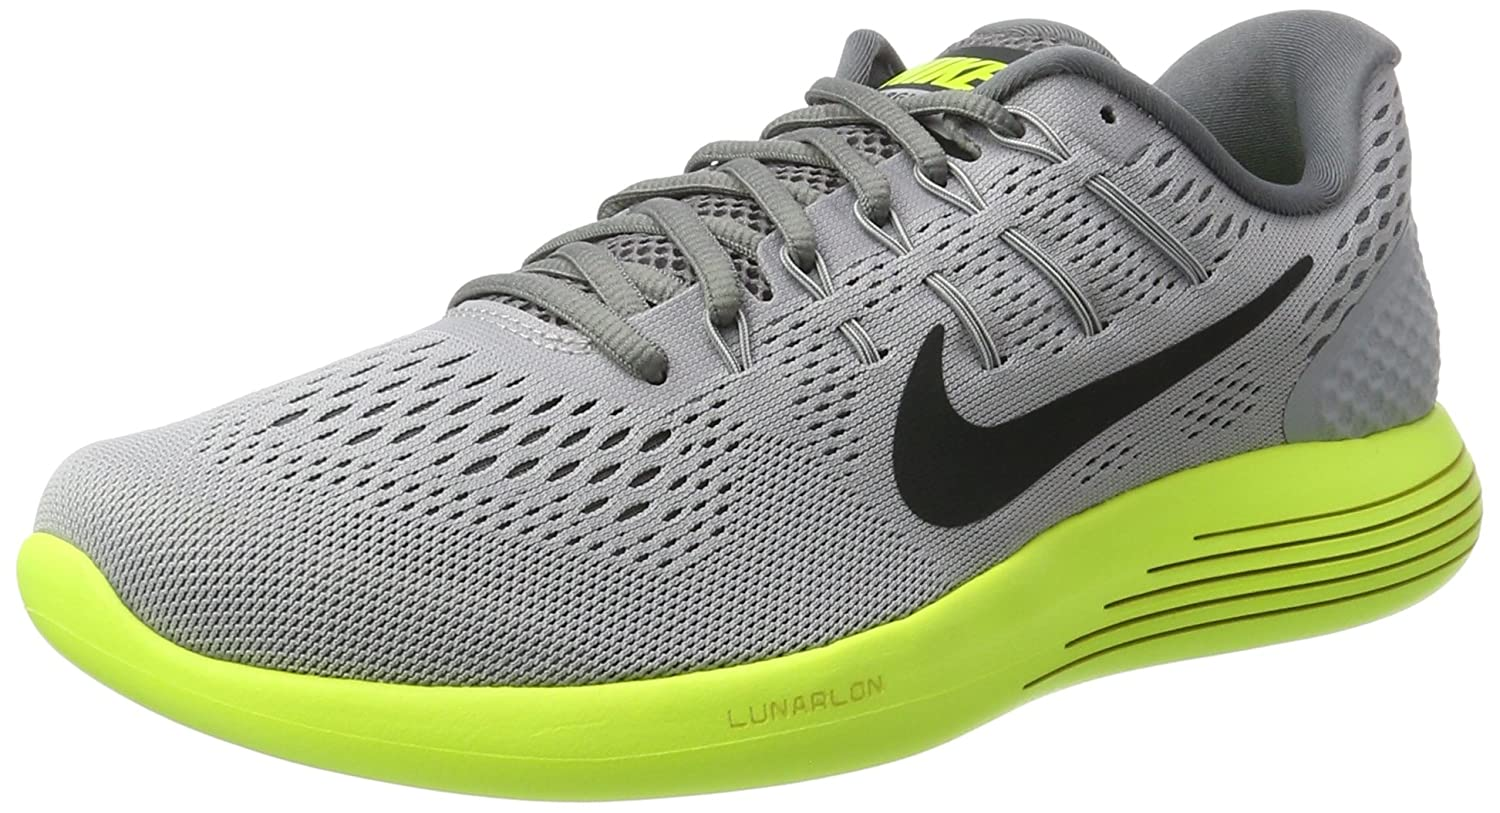 Nike Mens Lunarglide 8, Black / White - Anthracite B071KQBVNJ 9.5 D(M) US|Wolf Grey/Anthracite/Volt/Cool Grey